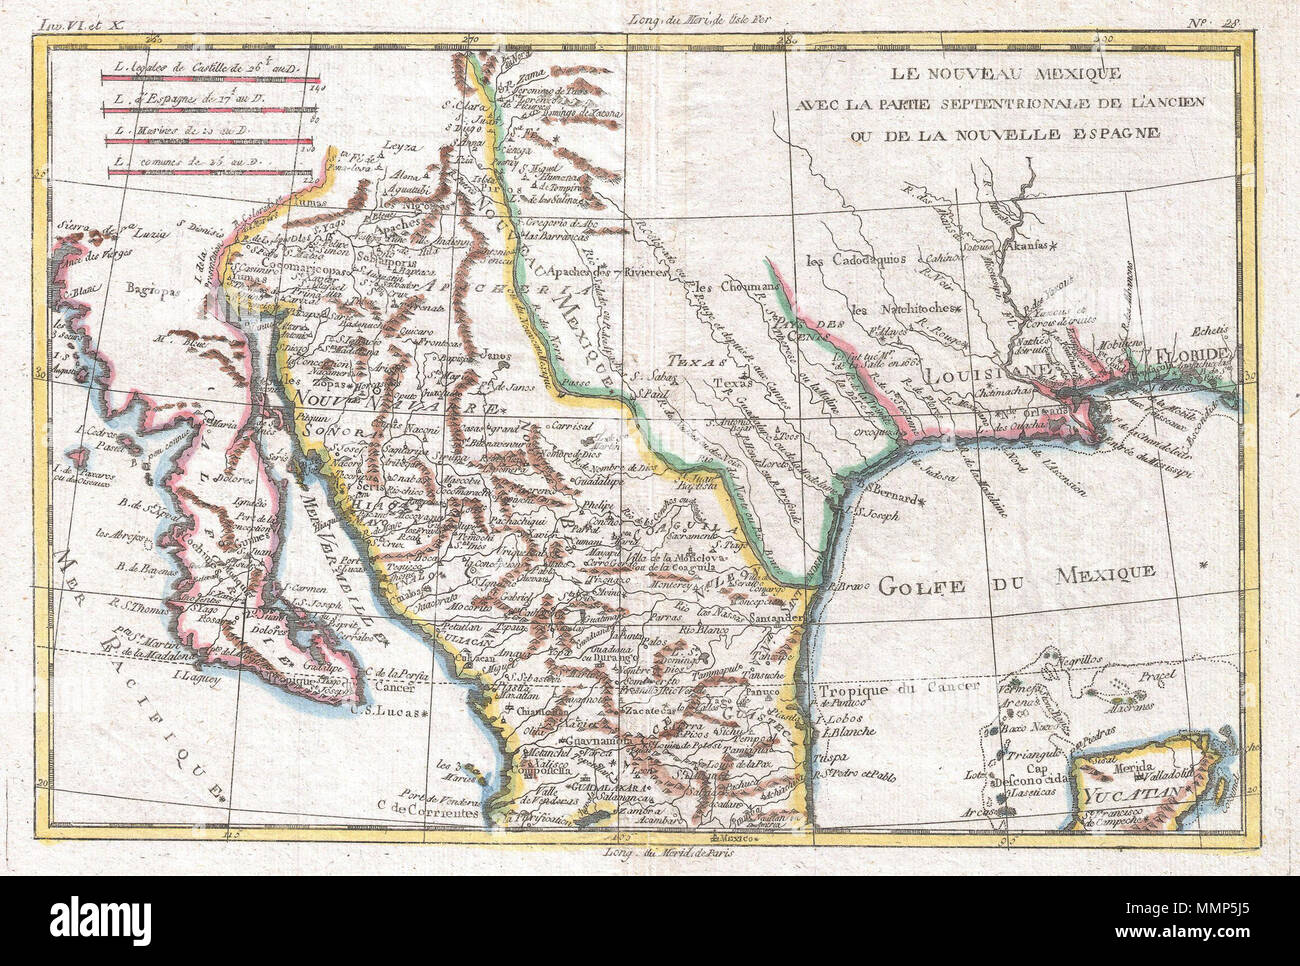 Yucatan Map Of North on map of vegas beach, map of italy, map of playa del carmen attractions, map of cancun, map of celestun, map of pacific lowlands, map of costa rica, map of hadramawt, map of isla mujeres, map of caribbean, map of patzcuaro, map of mexico, map of taxco, map of merida, map of quintana roo, map of riviera maya, map of belize, map of punta allen, map of mahahual, map of veracruz,